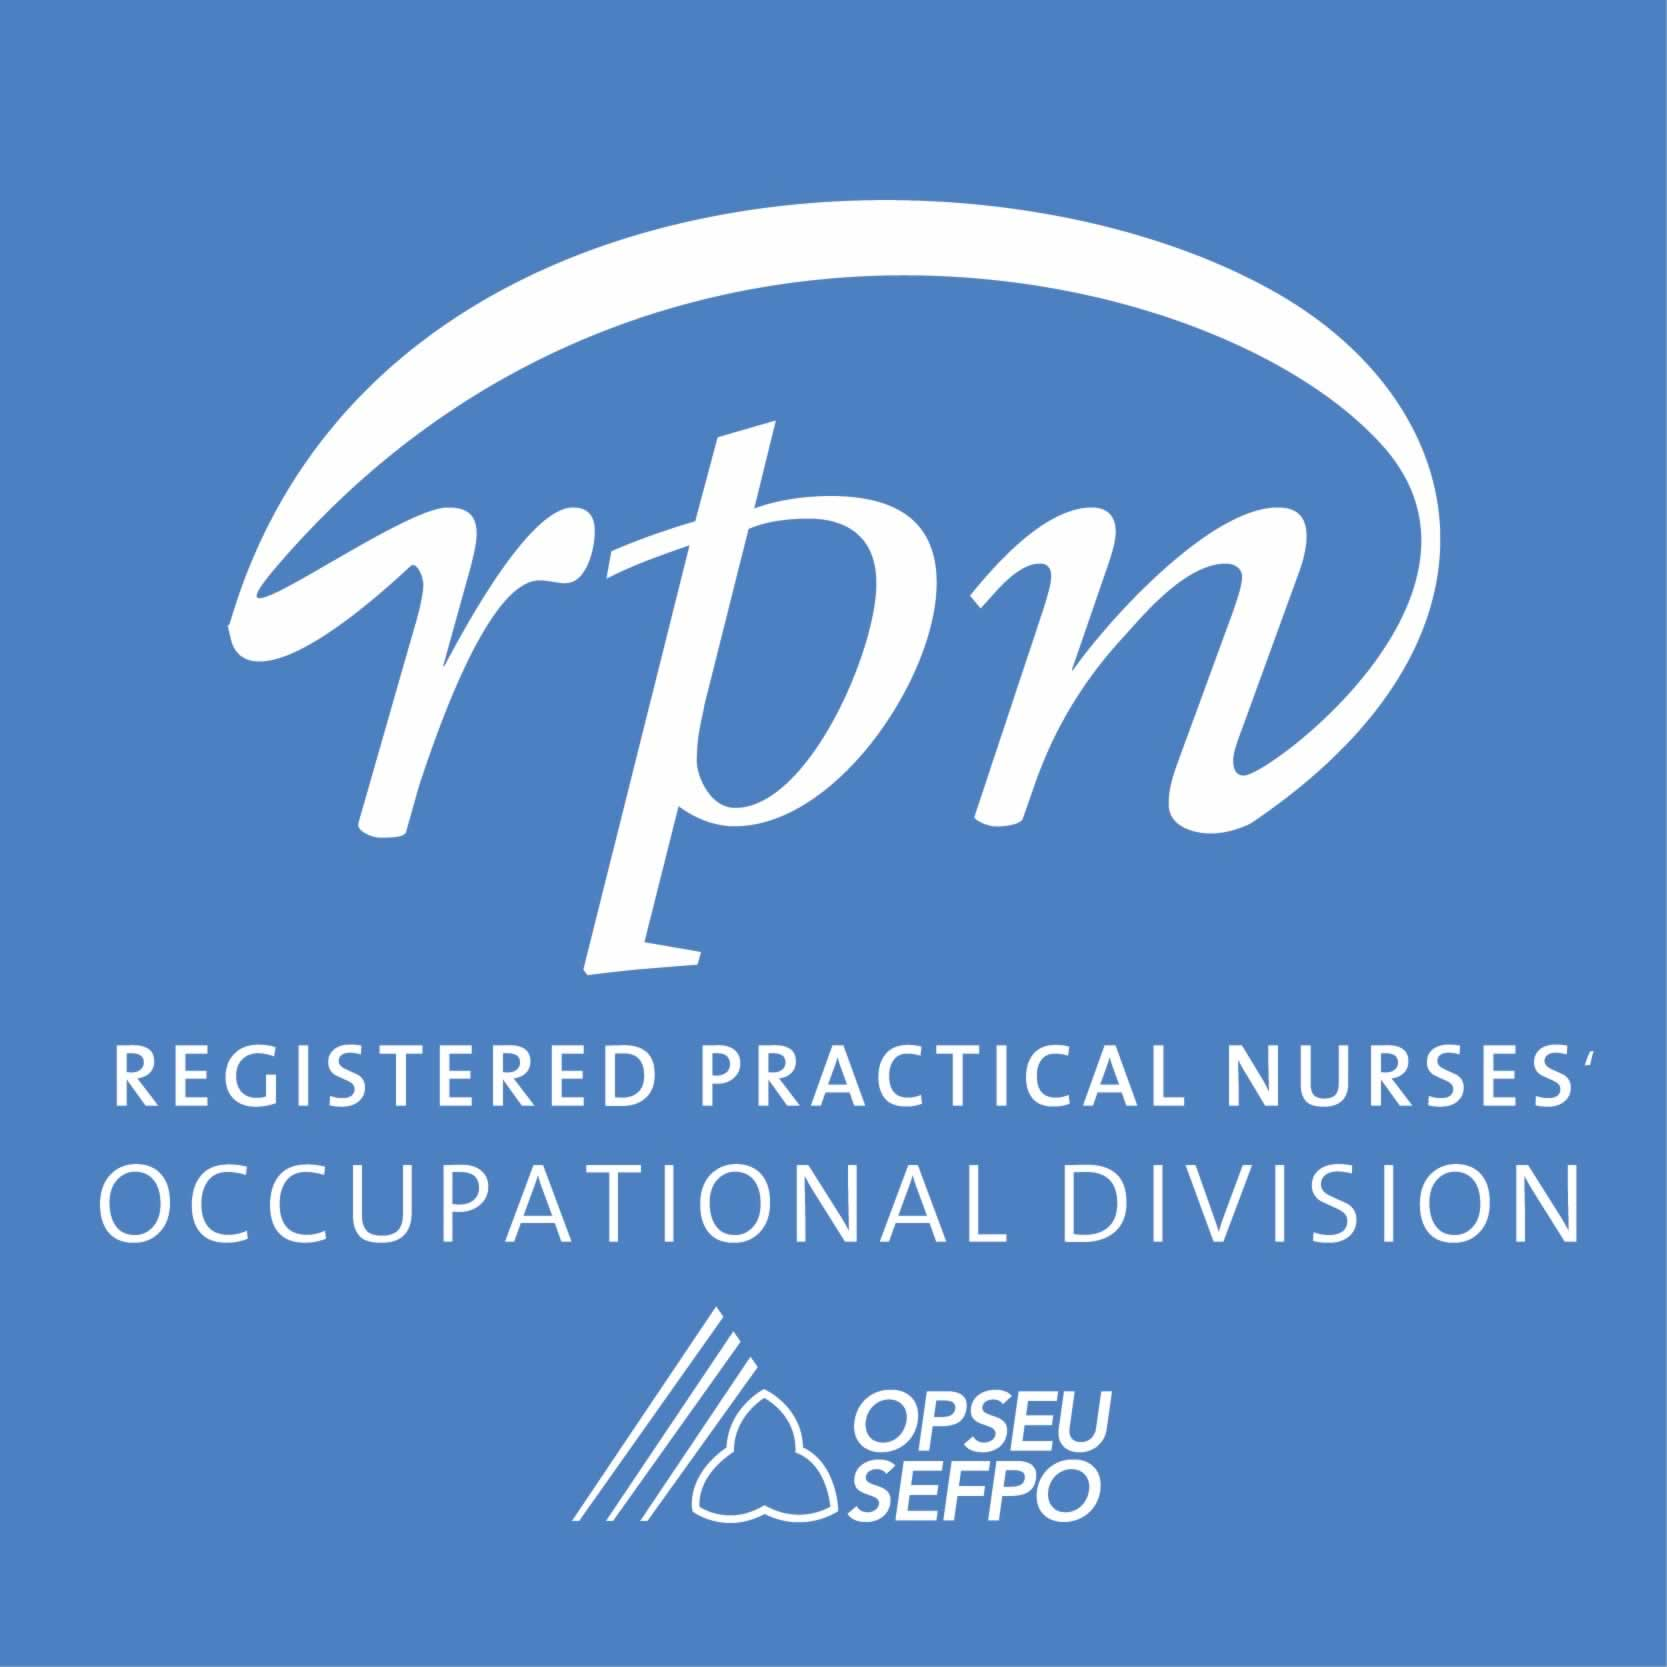 Letter from RPN Occupational Division in support of College Faculty